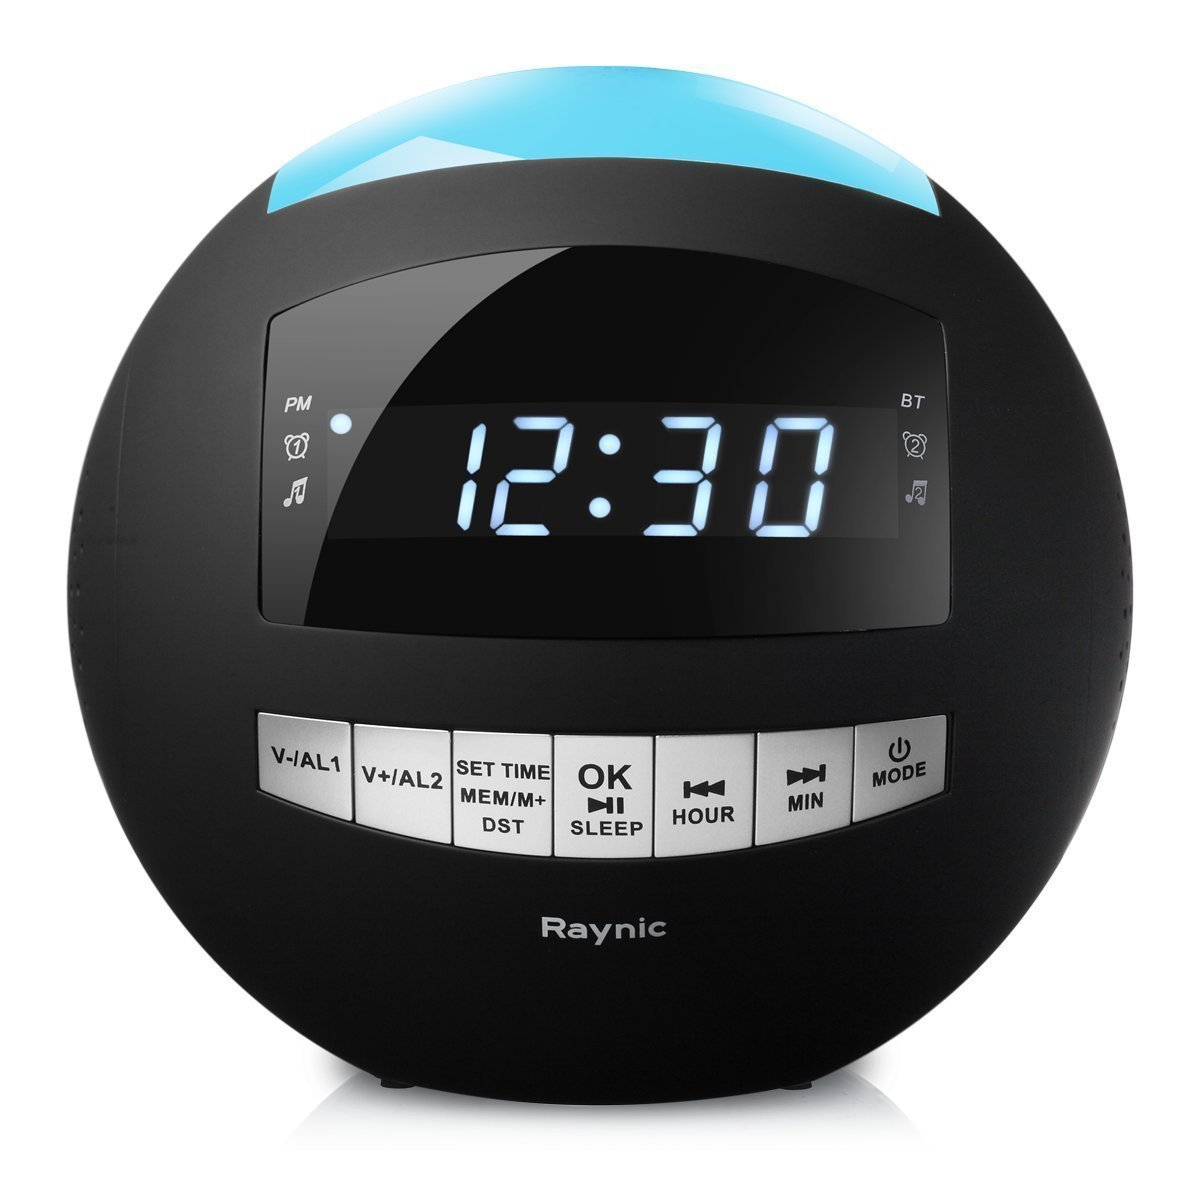 Raynic Digital Alarm Clock Bluetooth with AM/FM Radio, Dual Alarms, USB Charging Ports, Timer, Snooze, Dimmer, Loud for Heavy Sleepers, Bedrooms, Kids, Desk, 7-Color Night Light [2018 New Upgraded]